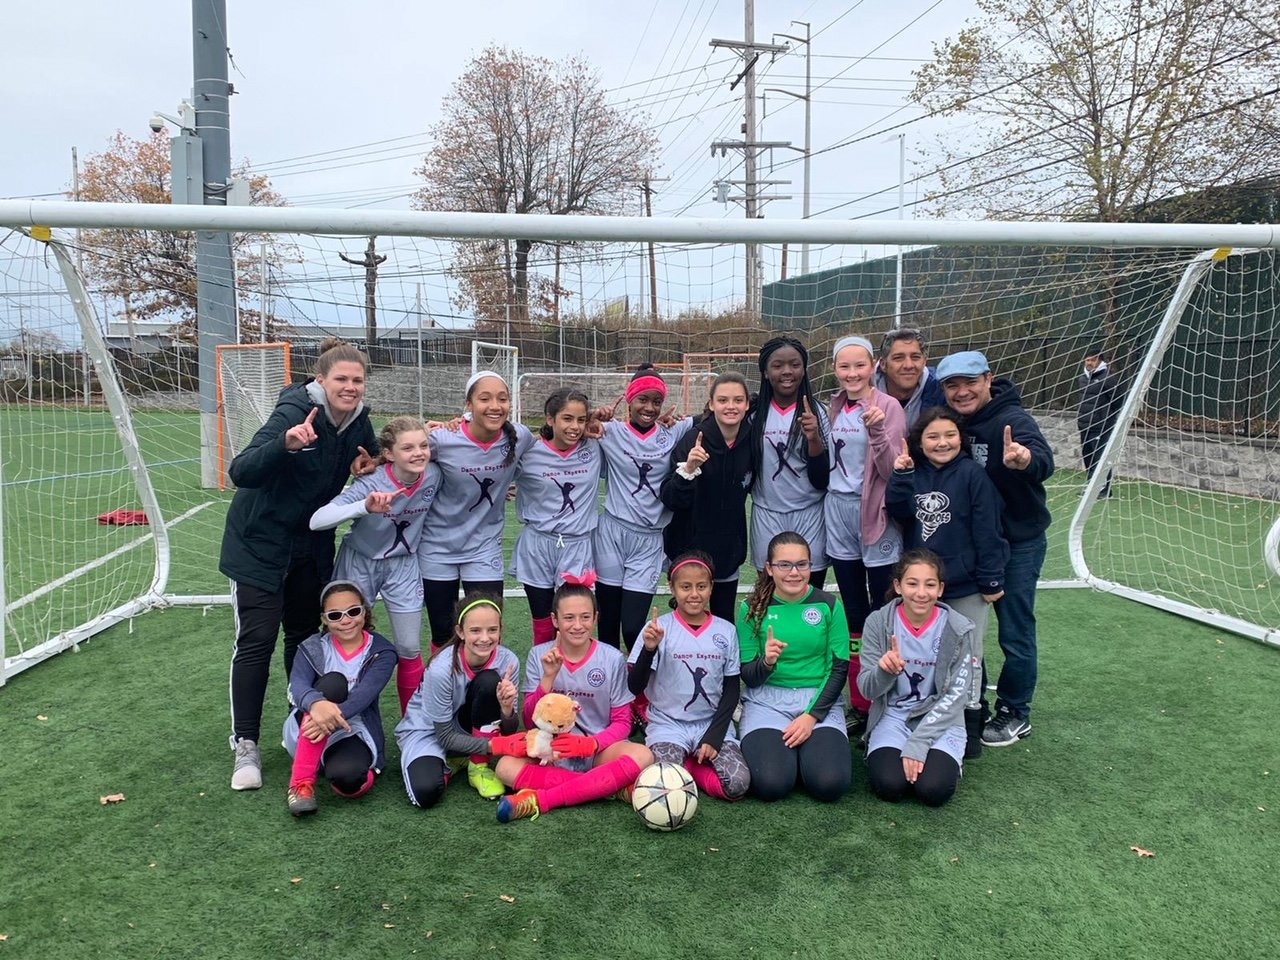 The division champion Blue Tornadoes. In front from left were, Blanca Esposito, Leora Herrmann, Leah Pisano (with TJ Mascot), Daniela Cantor-Moran, Brianna Ruiz and Tamar Pinchasov. Standing from left were trainer Kelly Wright, Isabella Vardaro, Aysu Unver, Alysha Lopez, Olivia Brown, Jane Marshalik, Chinello Obichere, Sara Sierzega, Madison Navarijo, and coaches Sabino Vardaro and Erwin Navarijo.